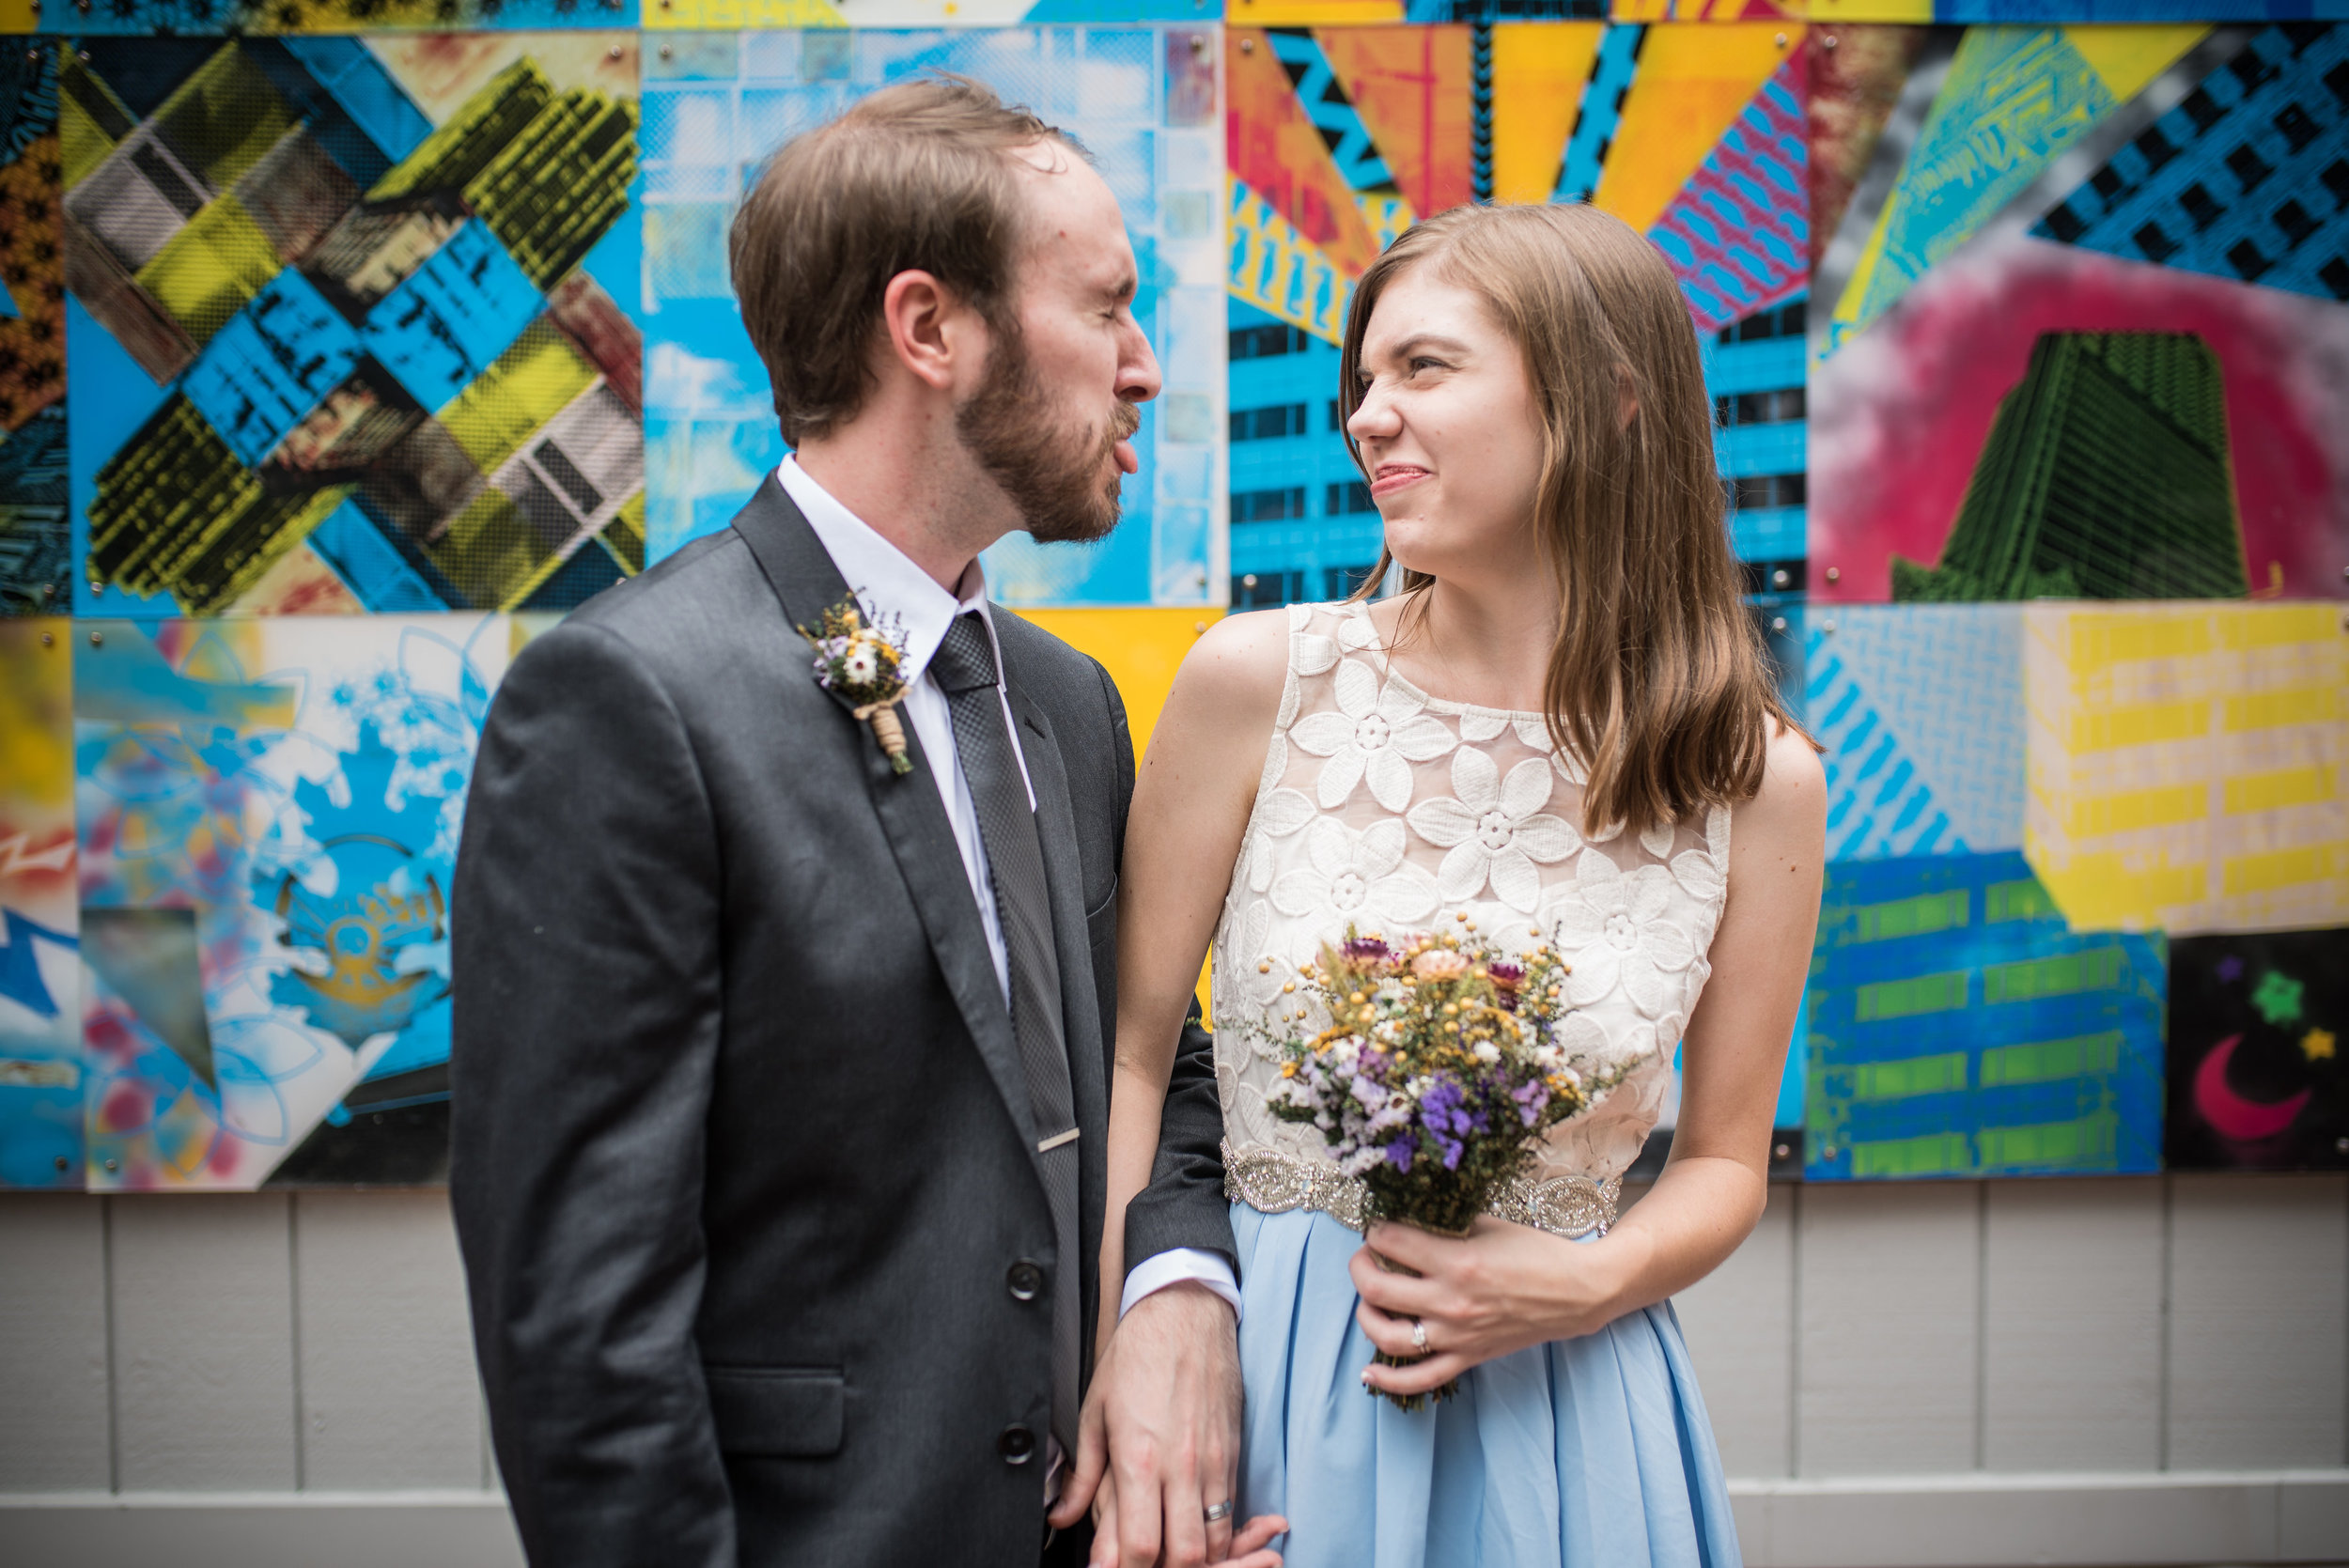 Raleigh Courthouse Wedding - North Carolina Wedding Photographer